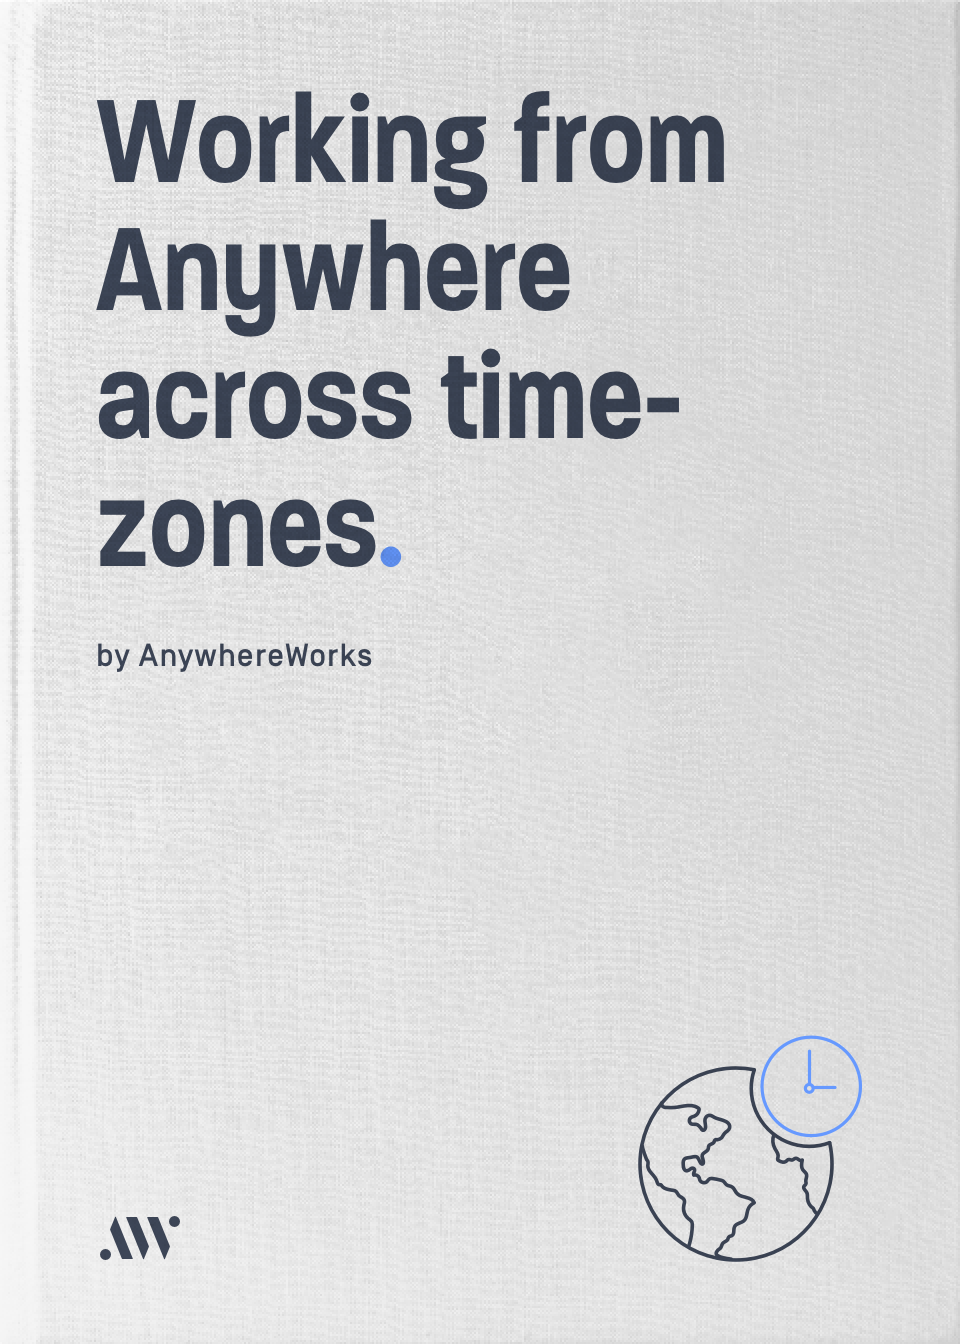 How to work effectively across time zones